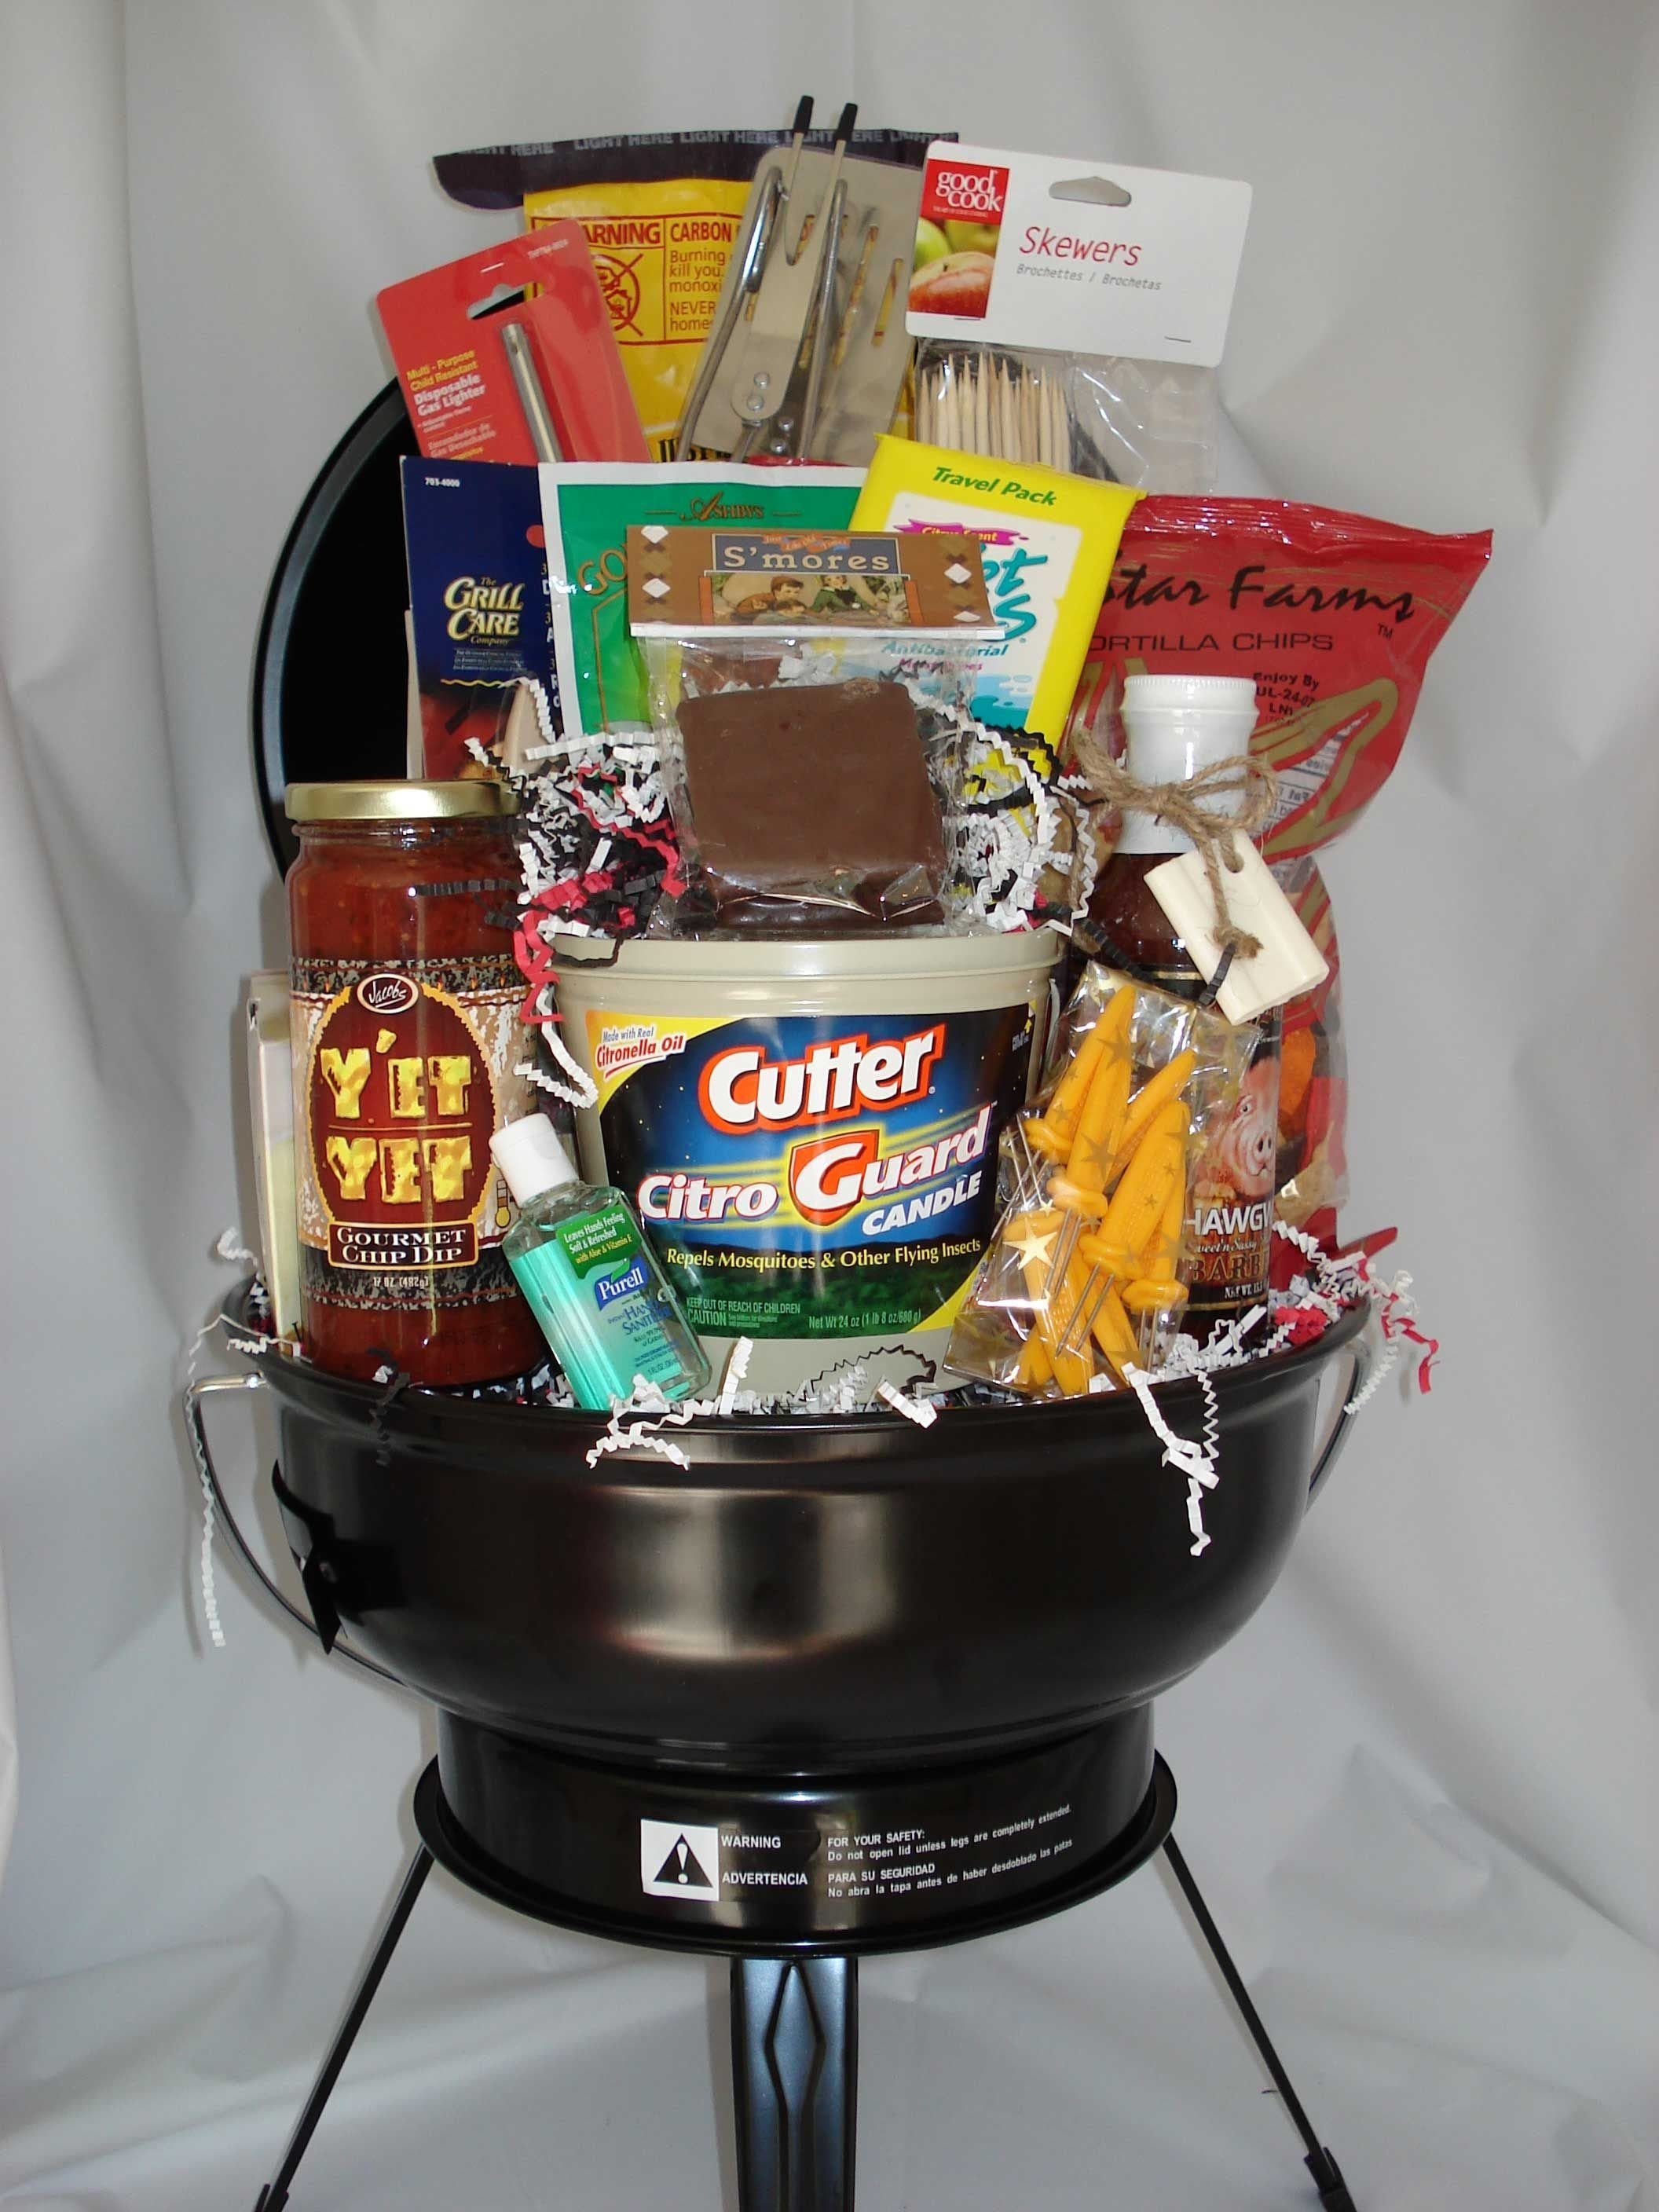 10 Cute Theme Basket Ideas For Silent Auction diaper raffle gift basket ideas to view a basket in larger detail 2